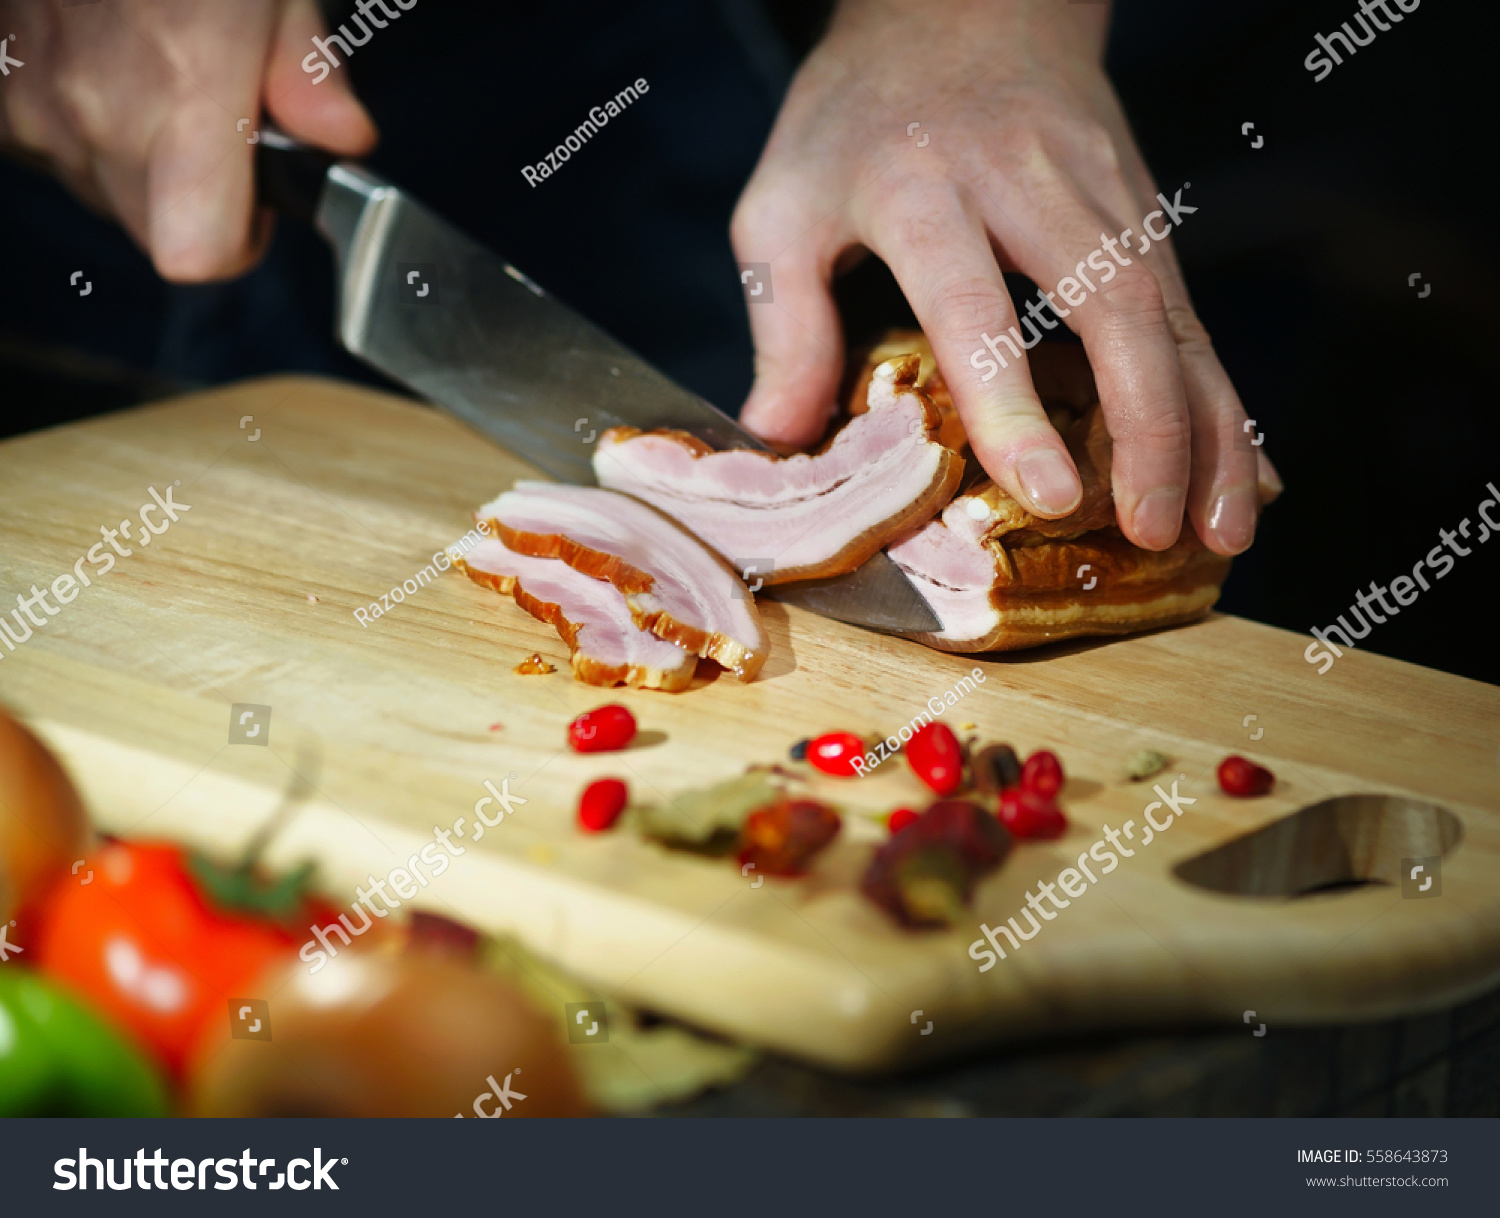 chef cuts smoked meat knife on stock photo 558643873 shutterstock. Black Bedroom Furniture Sets. Home Design Ideas